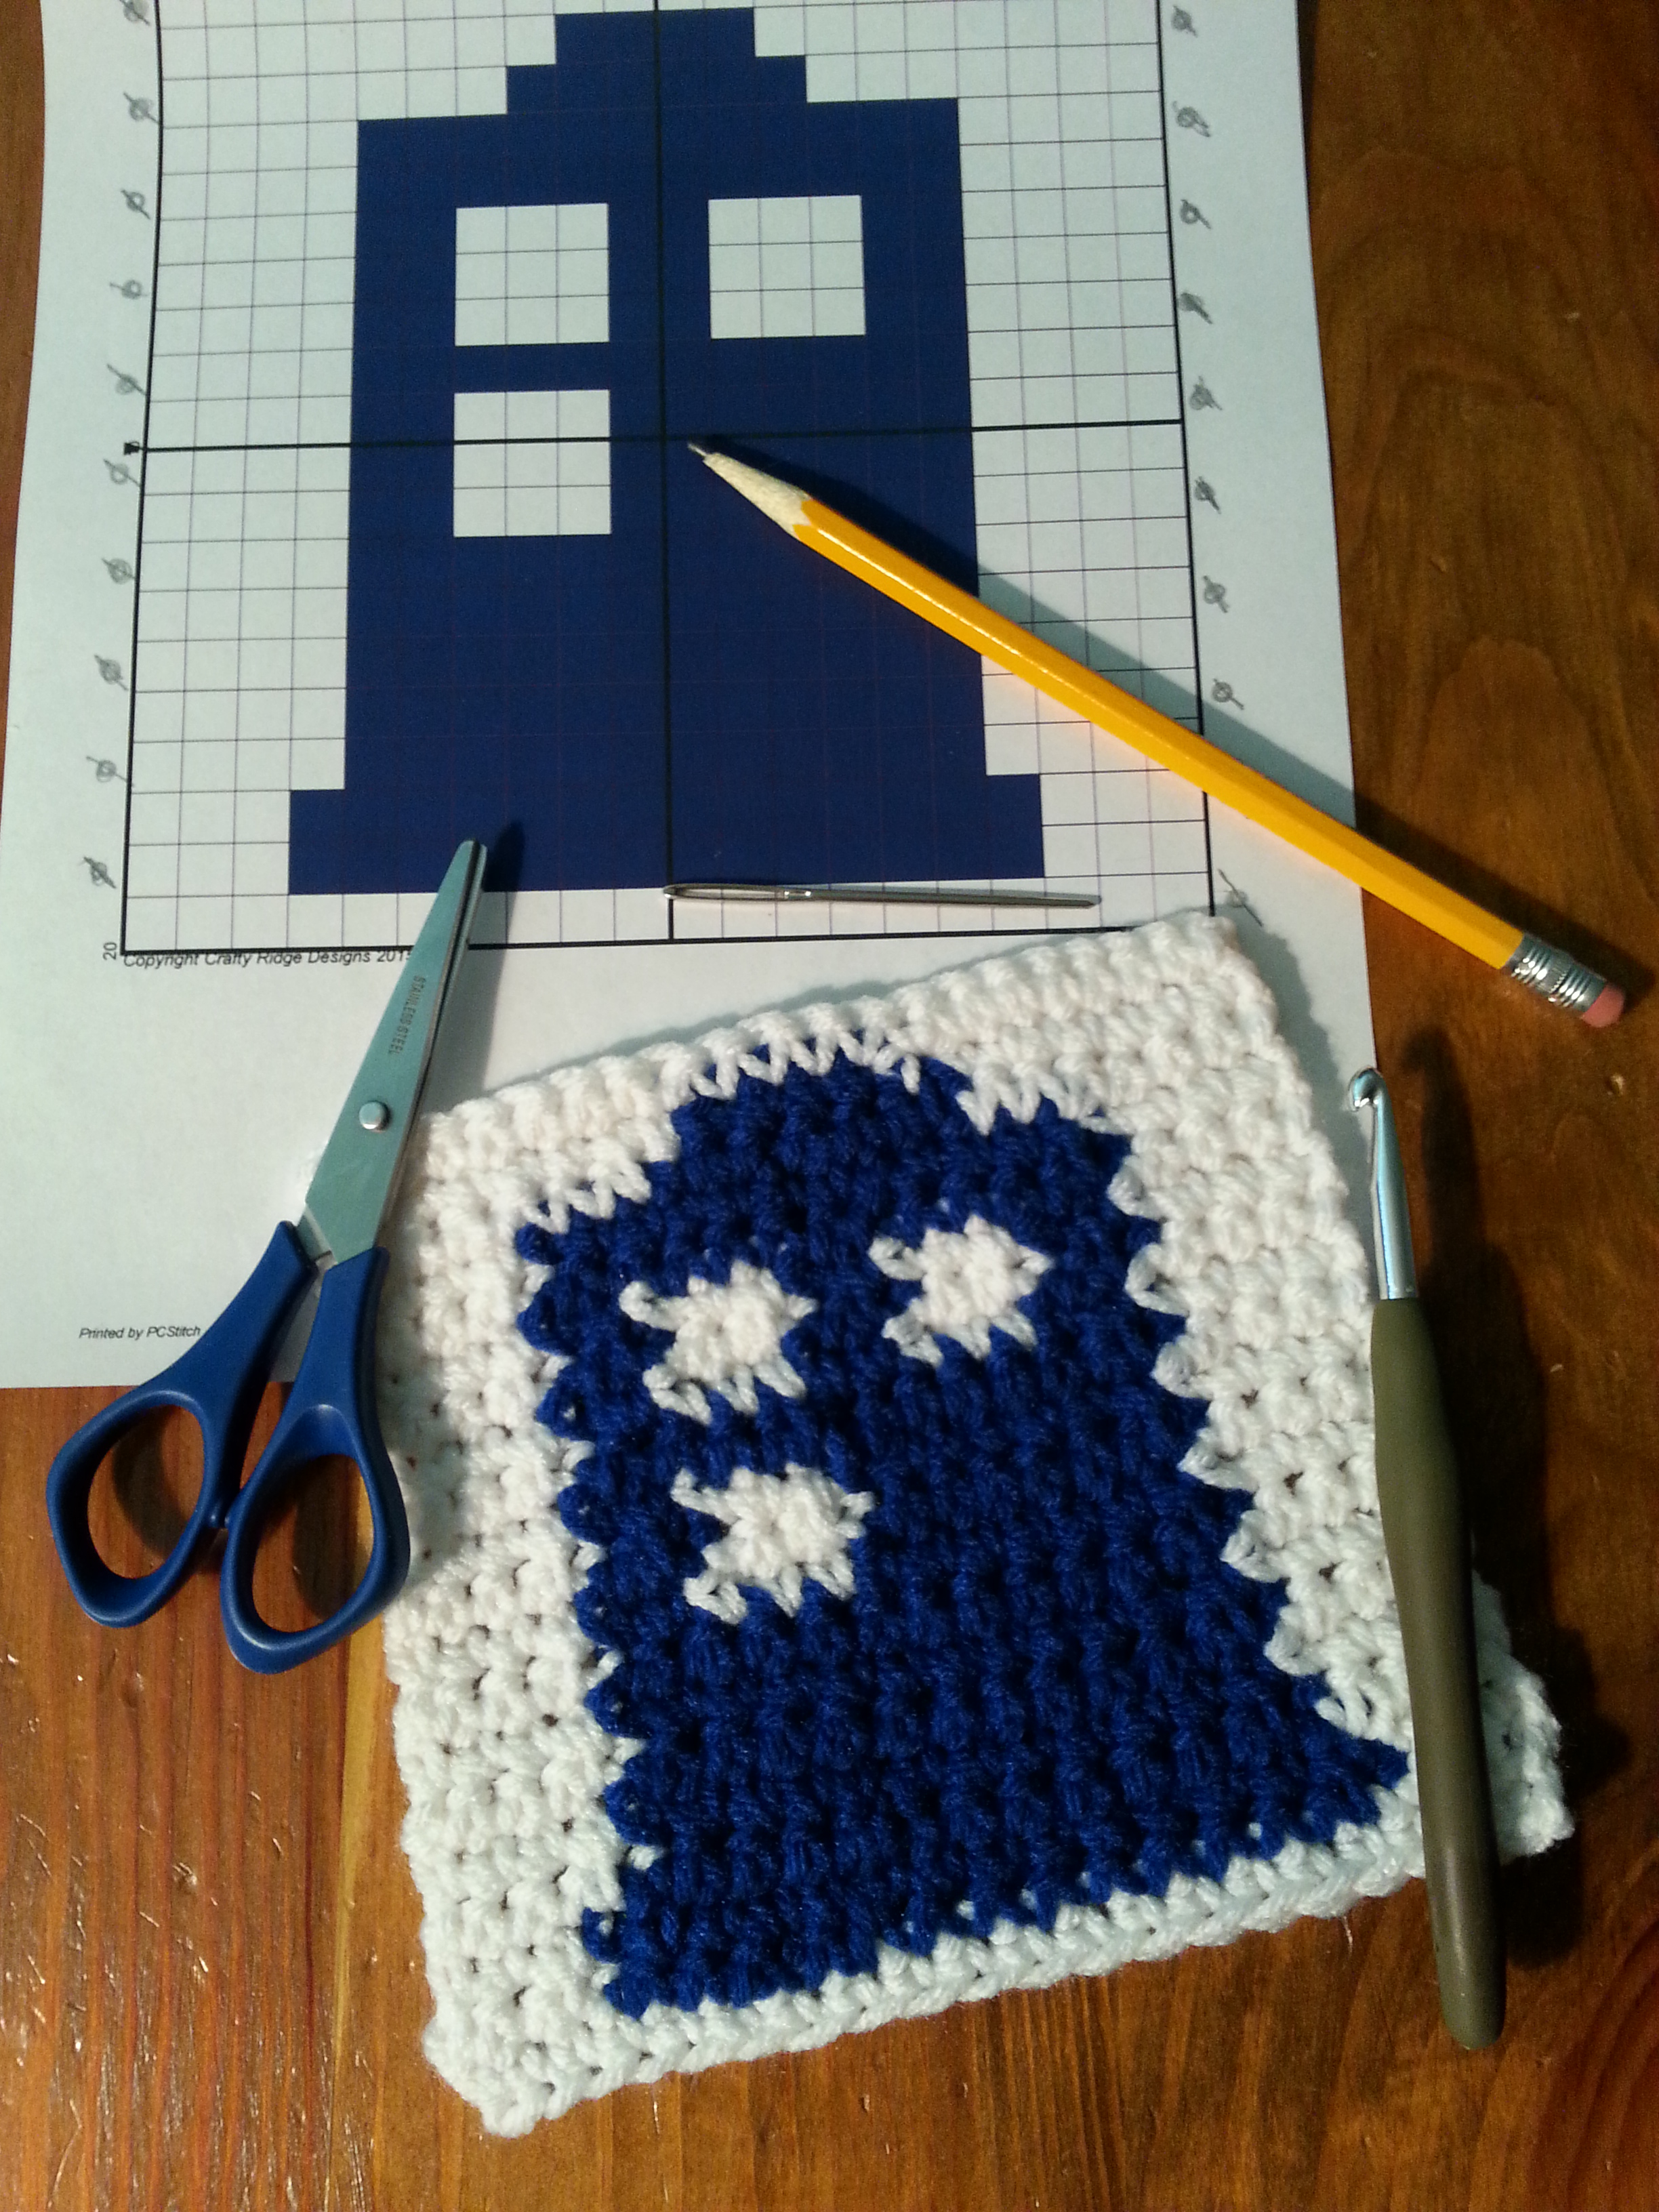 Crocheting From A Graph : Crocheting a graph can be easy as well as fun! Adding a graph to your ...